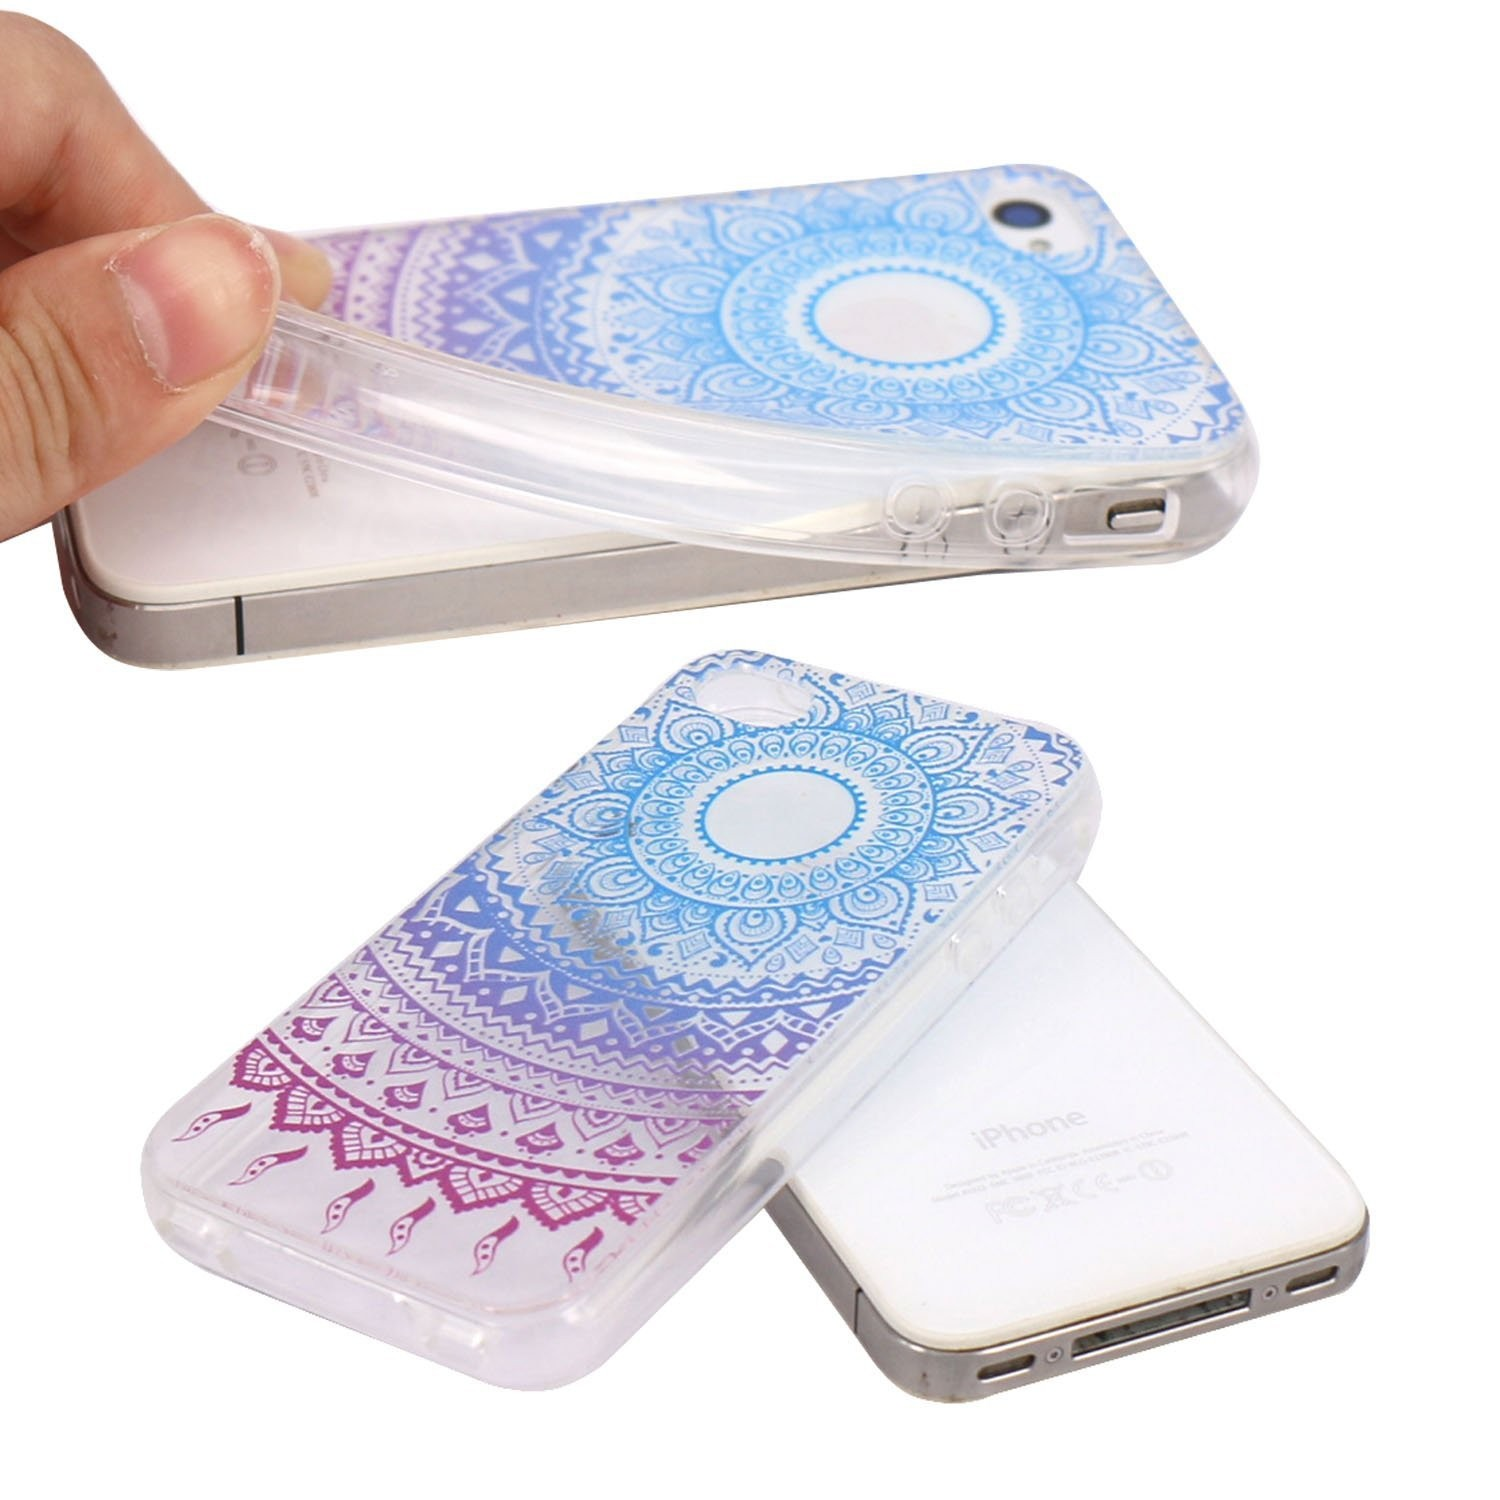 Iphone 4 Case Jaholan Beautiful Clear Tpu Soft Rubber Silicone Casing 4s Softcase Motif Owl Skin Cover For Blue Purple Tribal Mandala Cases Best Buy